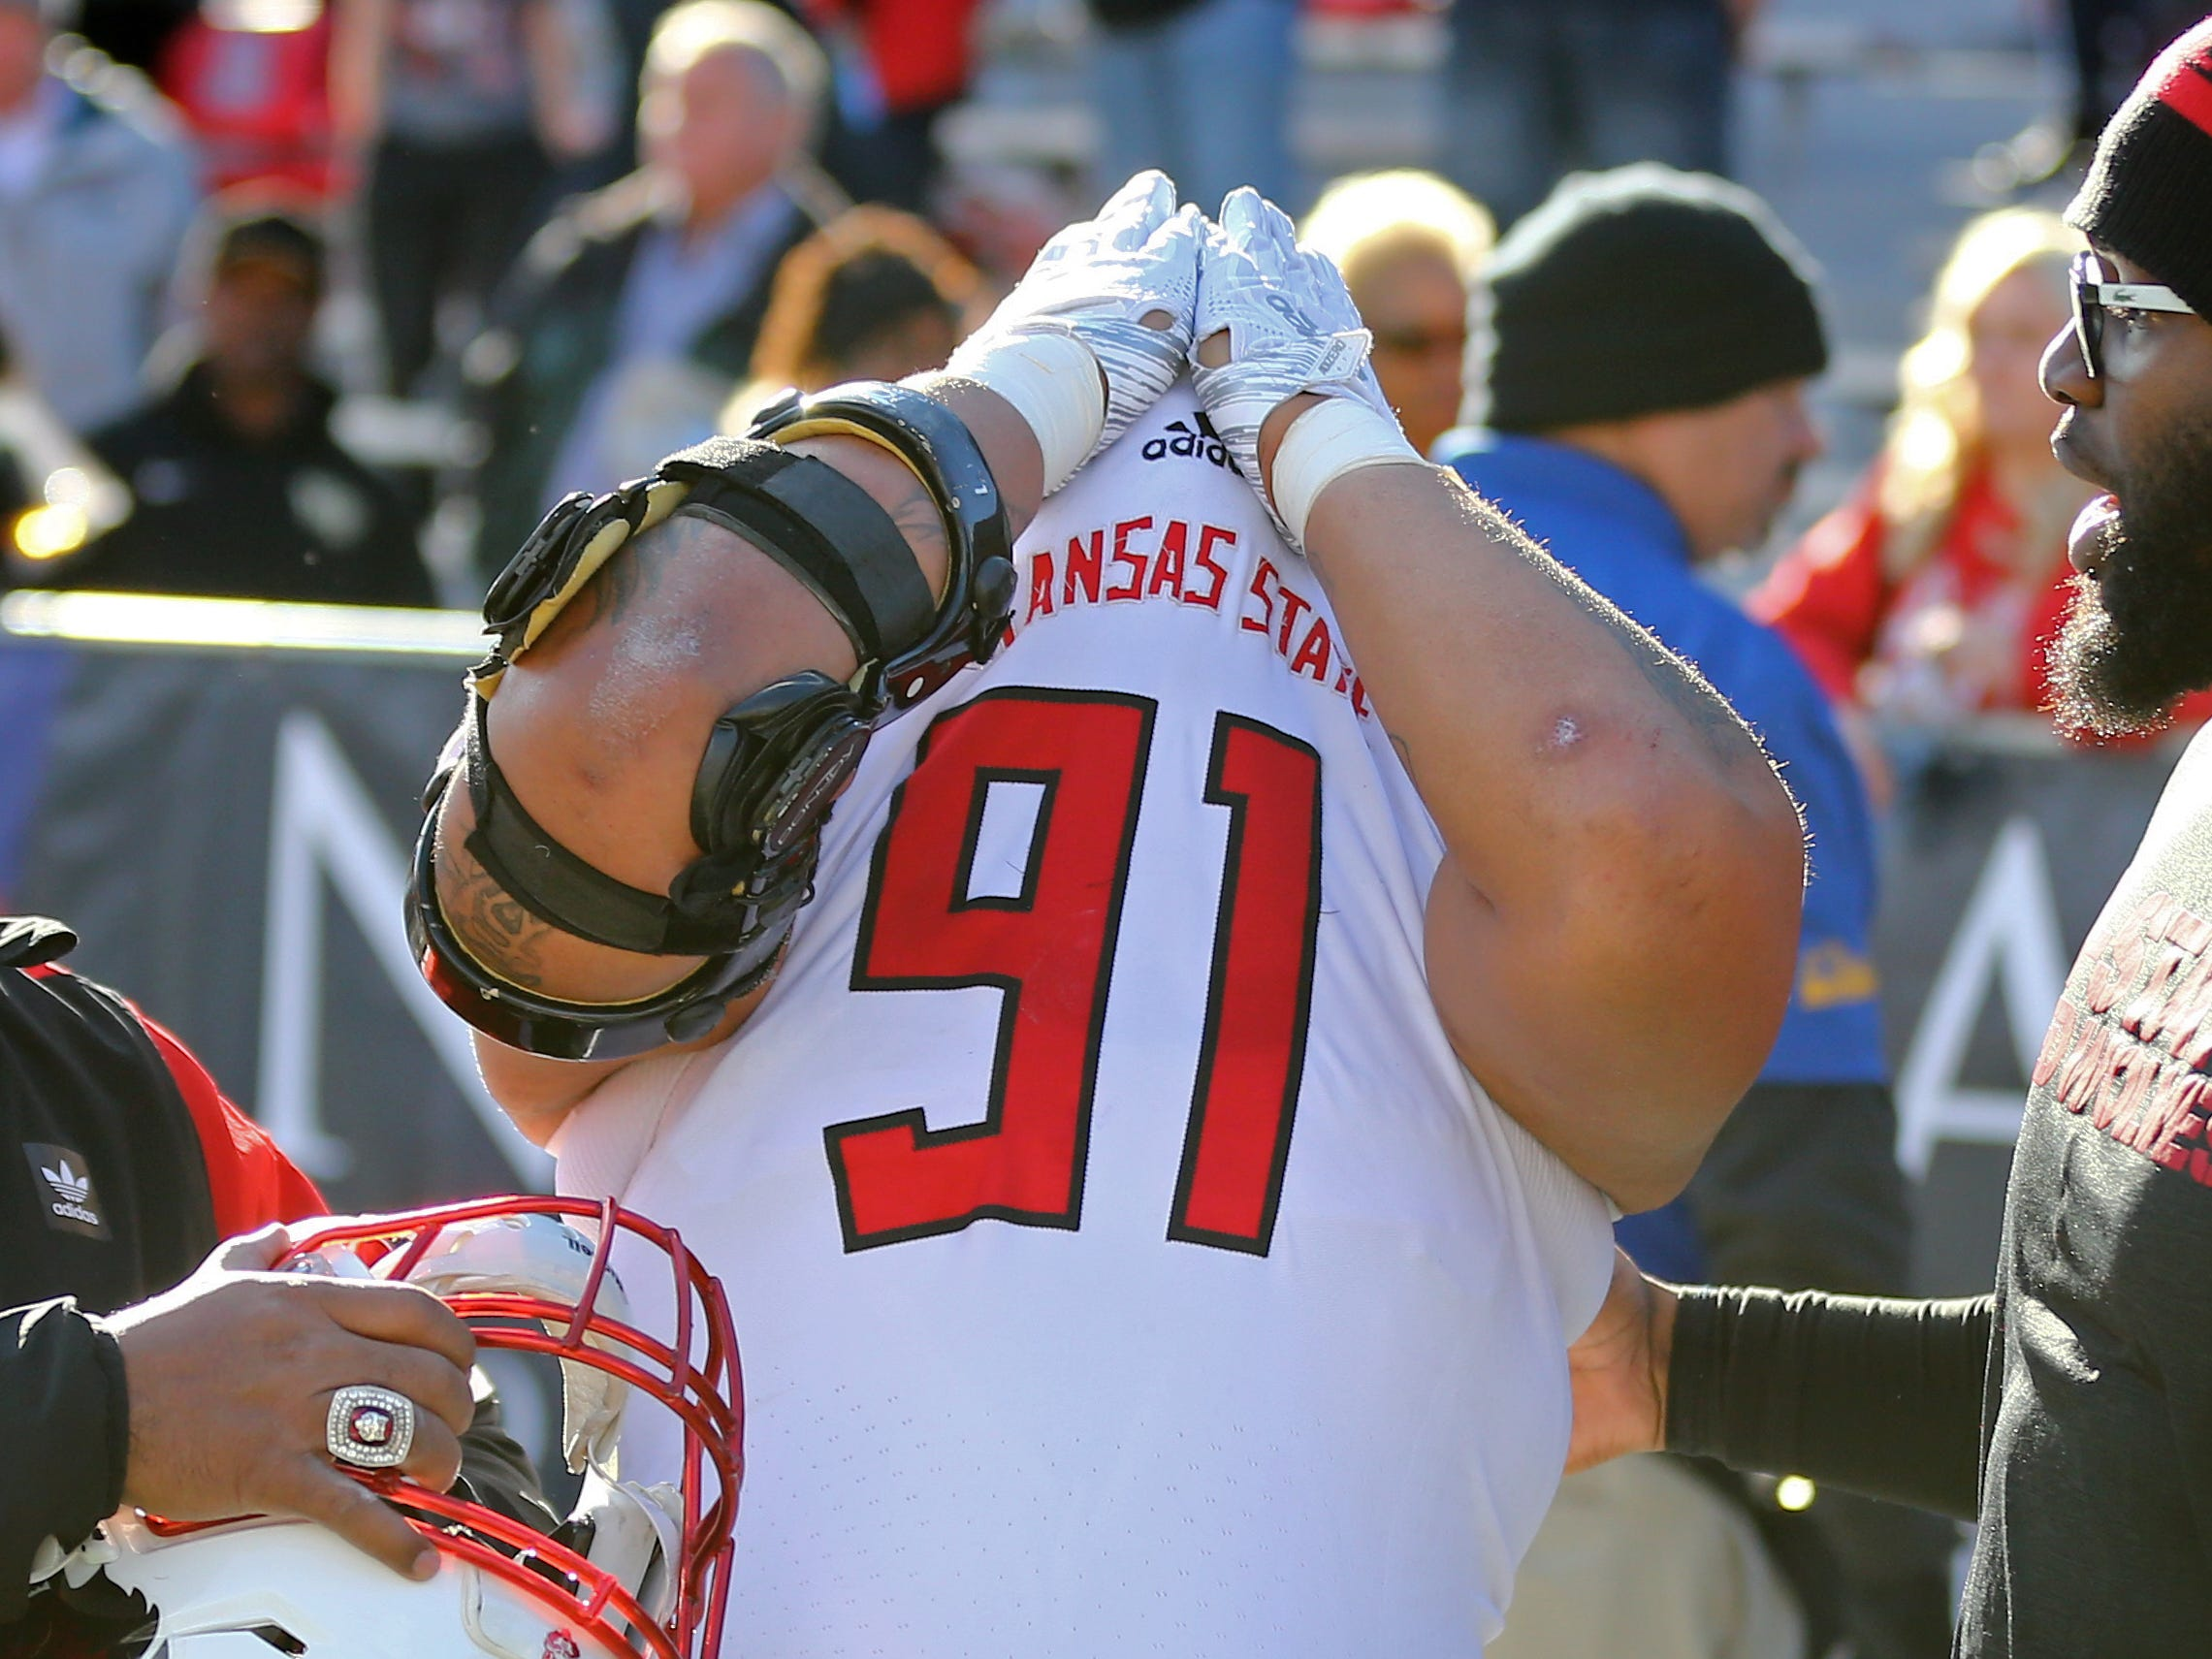 Dec 29, 2018; Tucson, AZ, USA; Arkansas State Red Wolves defensive lineman Donovan Ransom (91) cries under his jersey after losing in overtime to the Nevada Wolf Pack in the 2018 Arizona Bowl at Arizona Stadium.